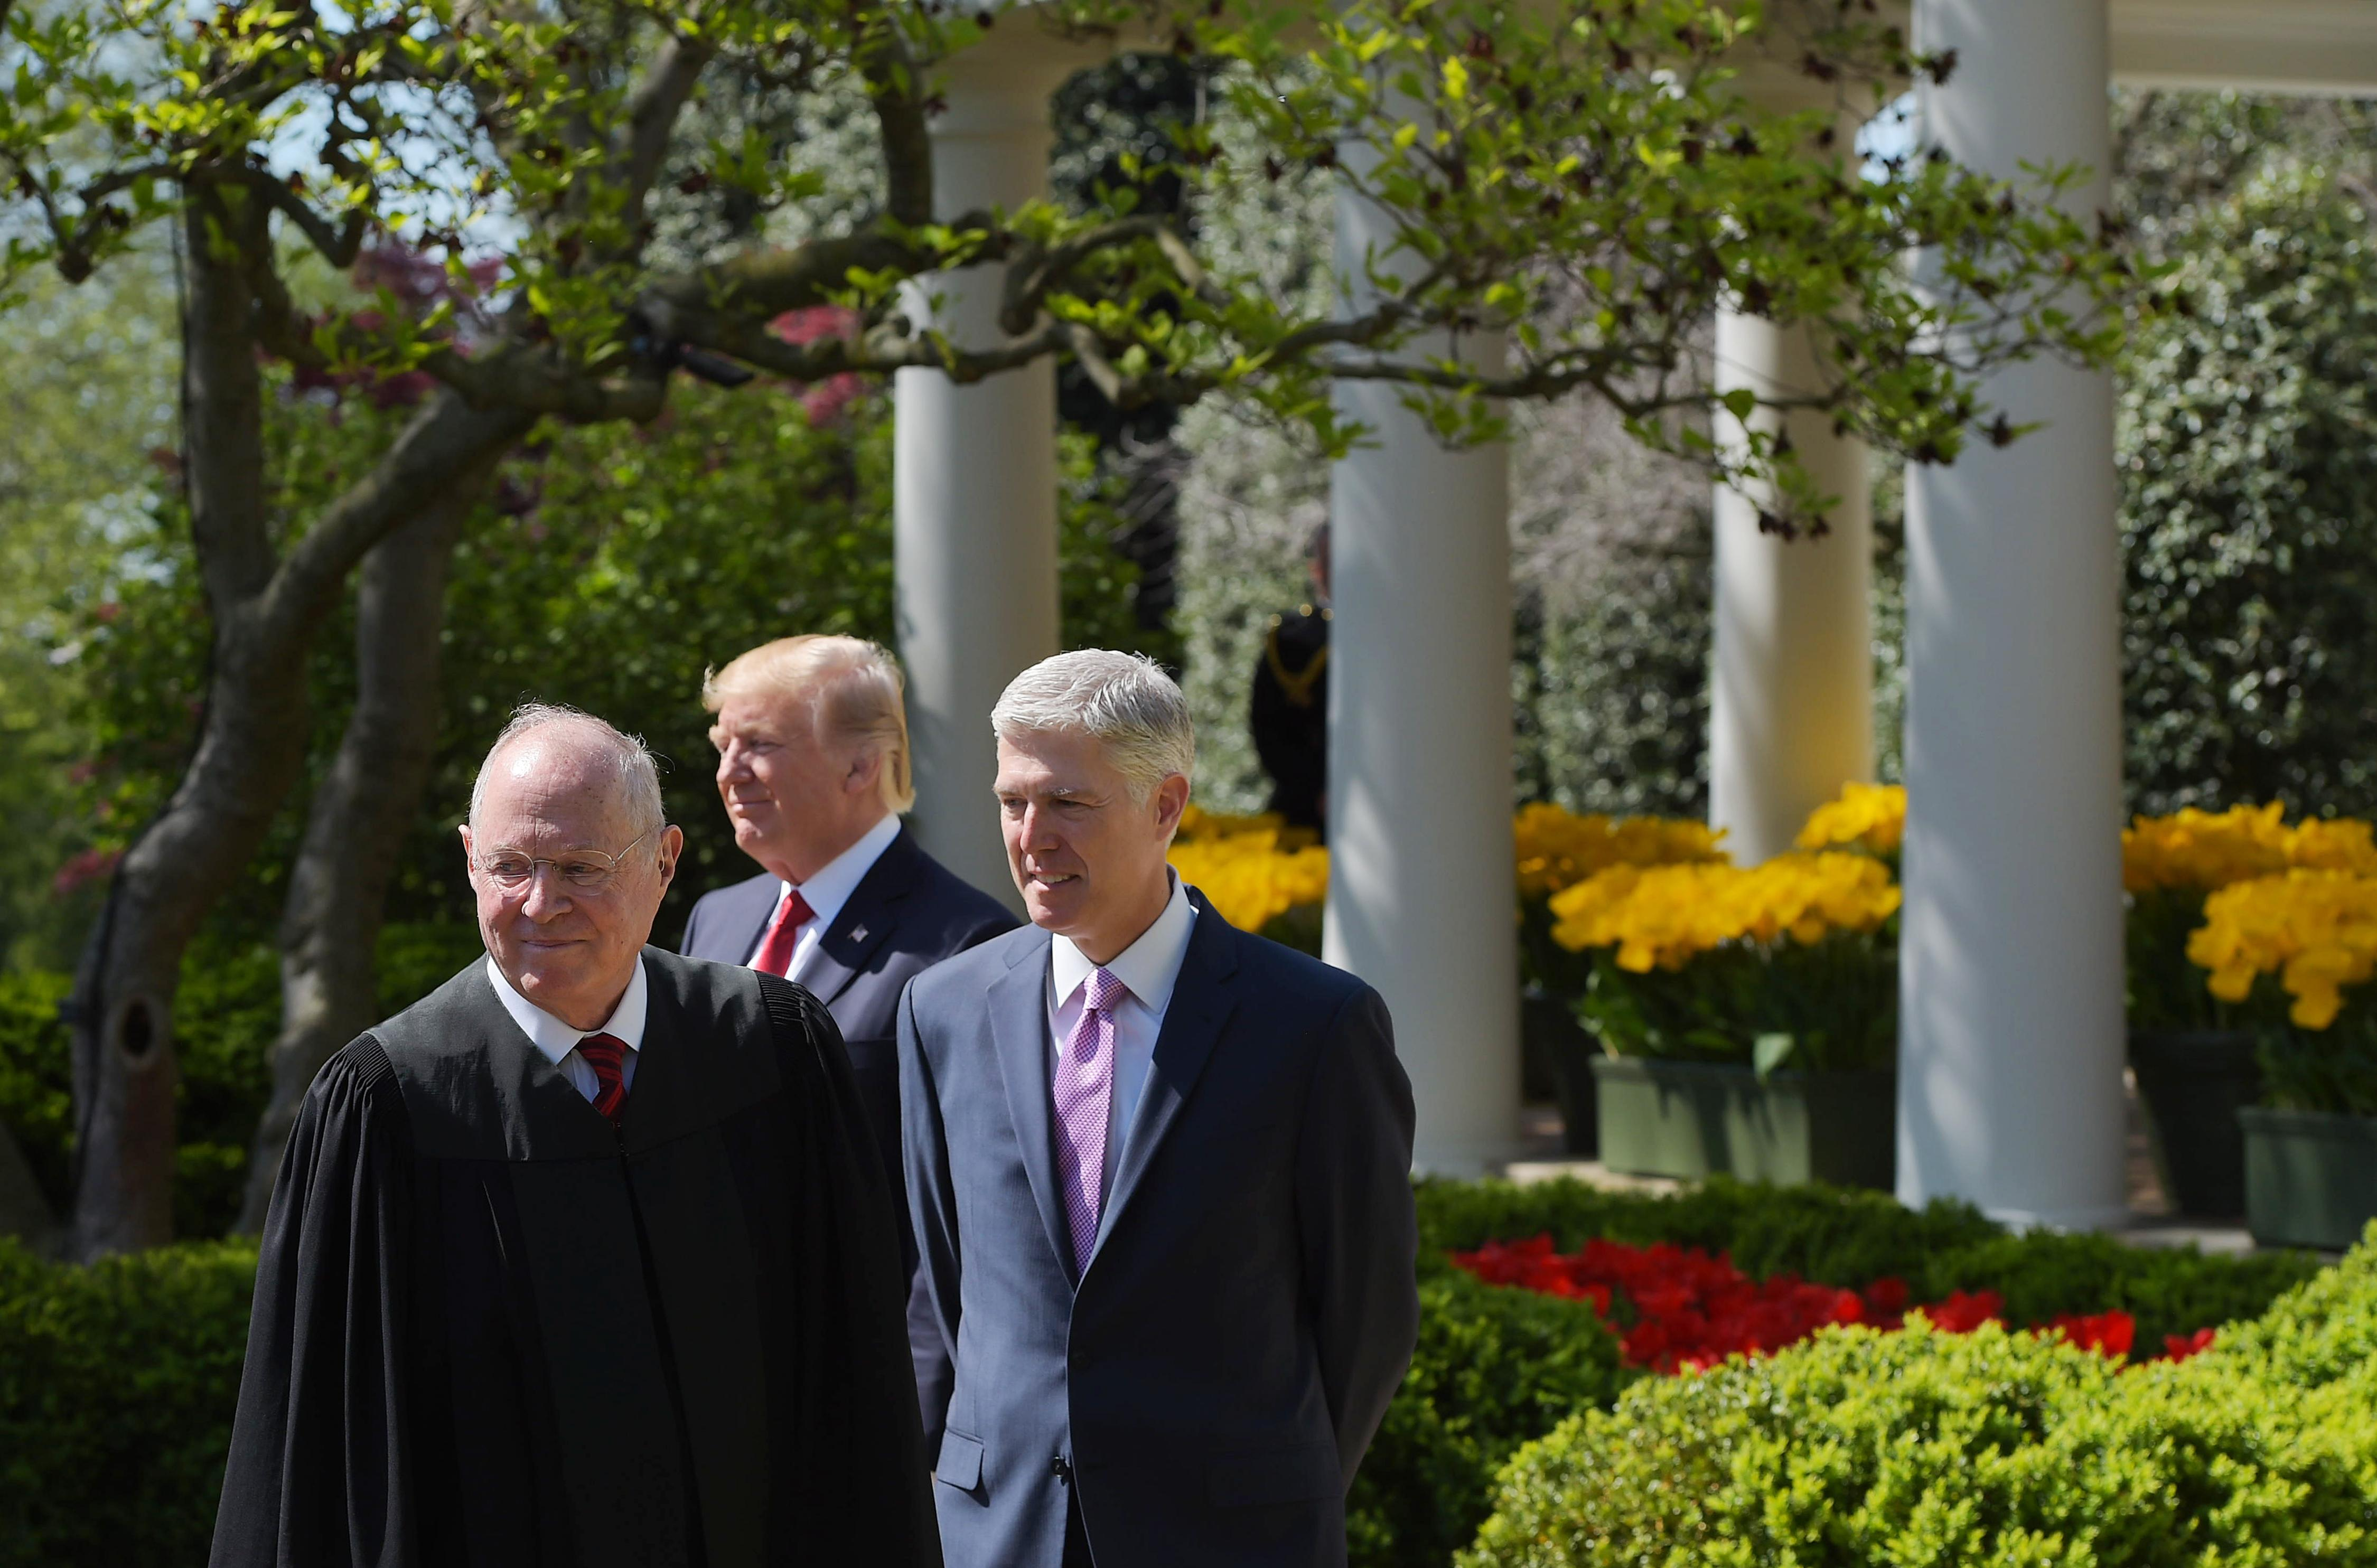 Kennedy, Trump, and Gorsuch outside the White House